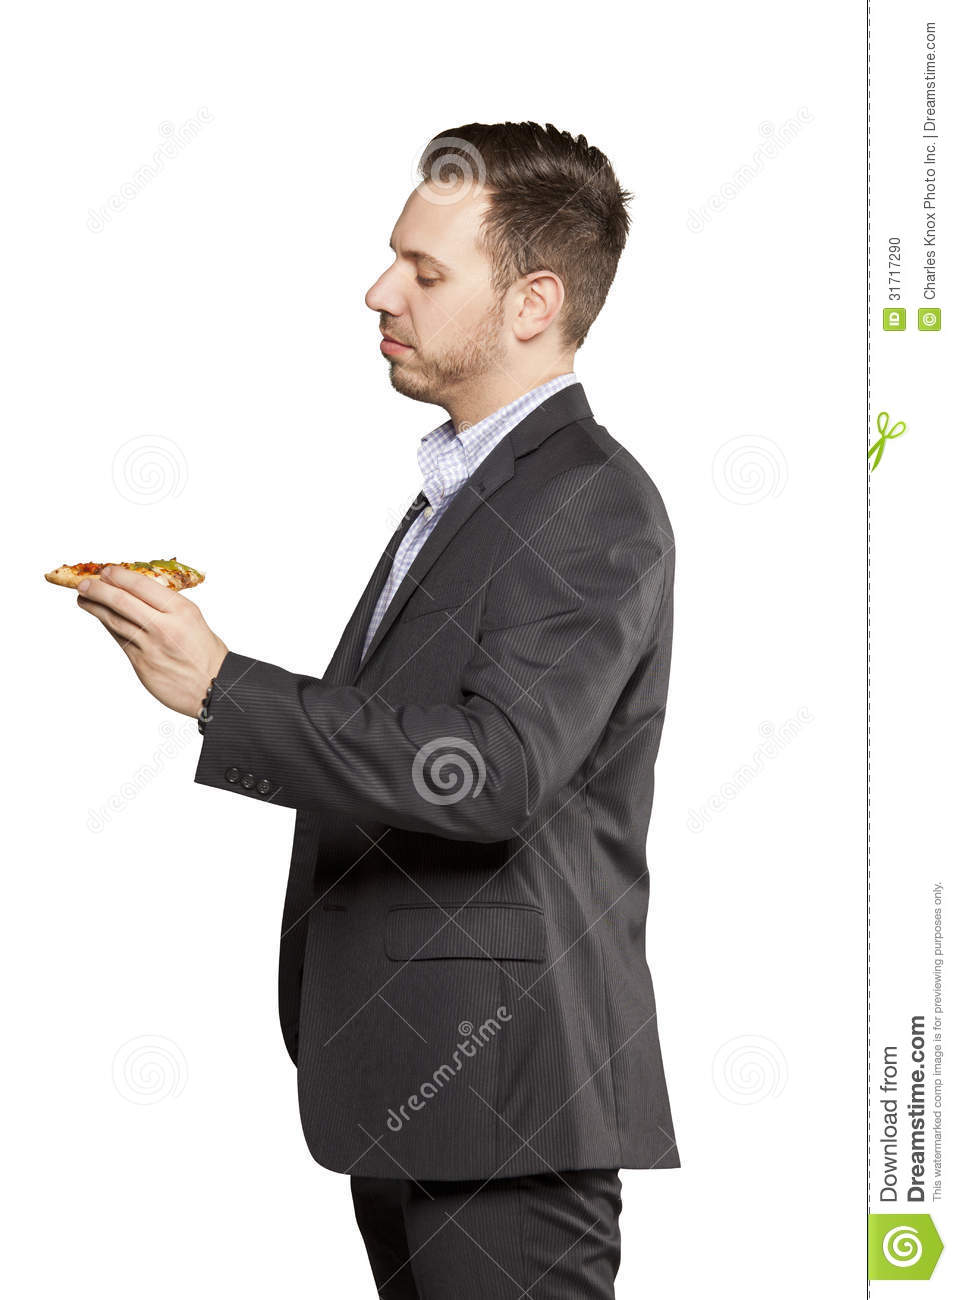 Young Man In Black Suit Stock Photo - Image: 31717290